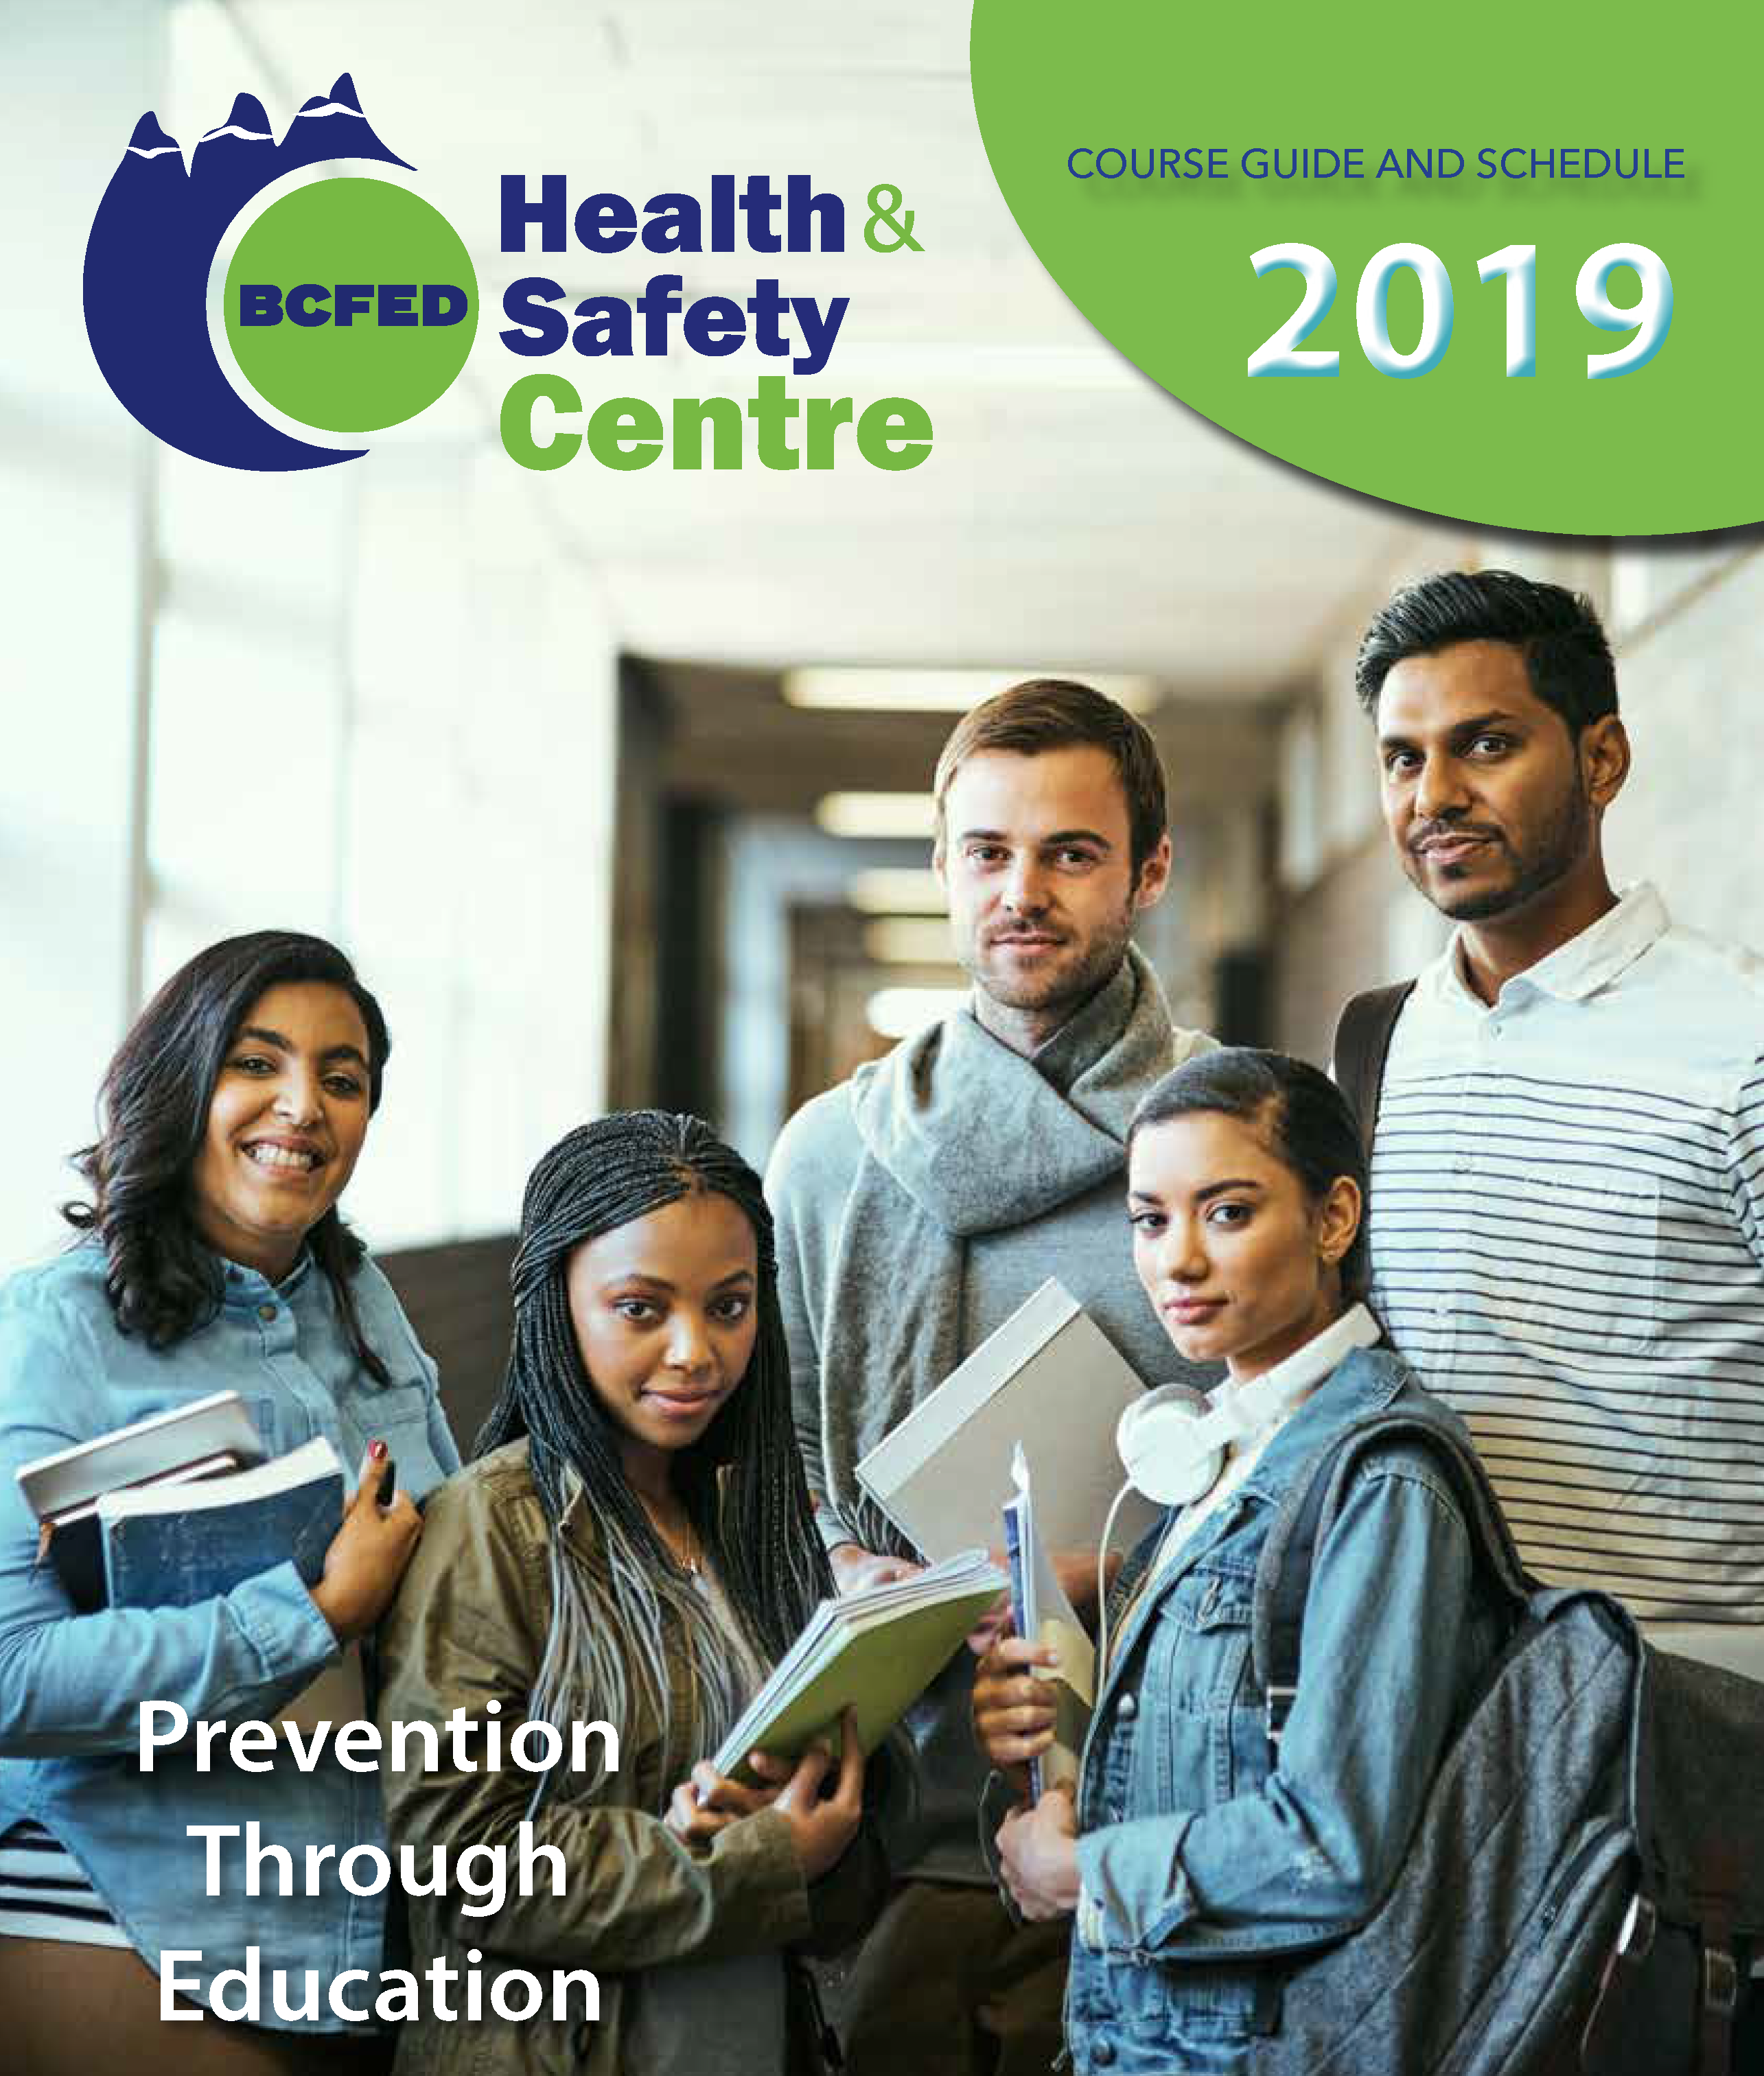 2cbfcbce41cc 2019 Course Guide and Schedule Available Now - BCFED Health   Safety ...